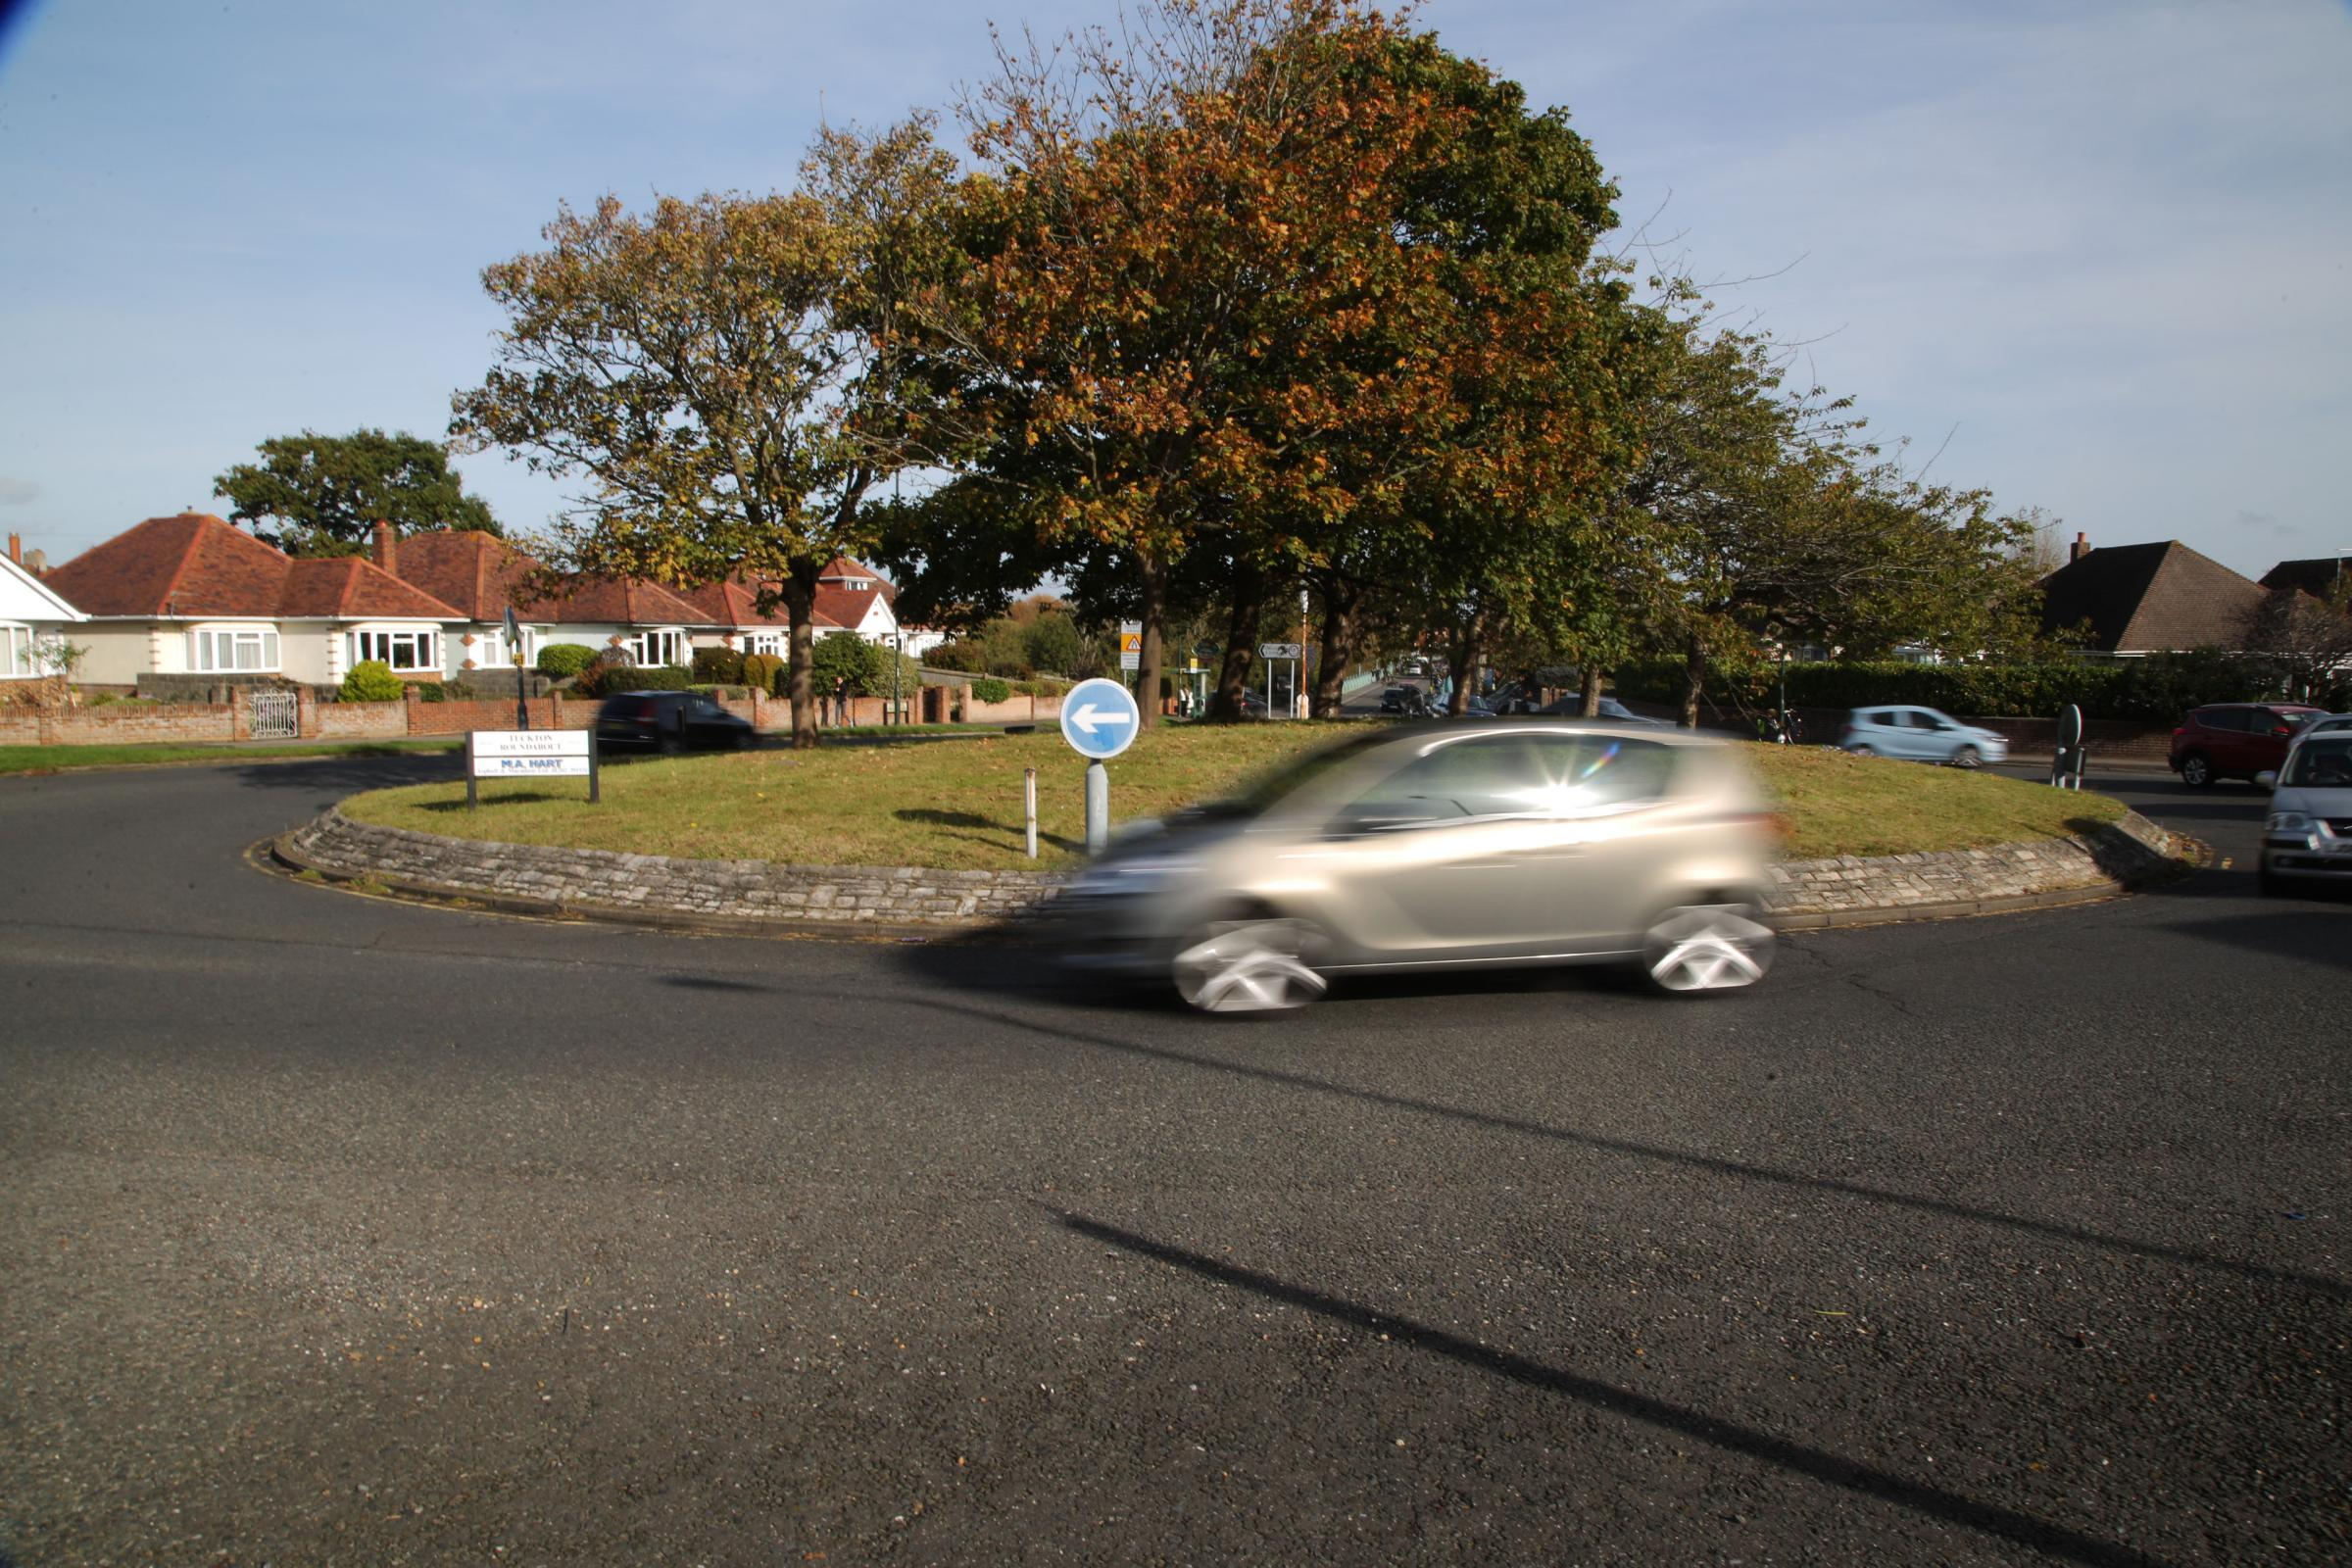 Tuckton Roundabout in Southbourne